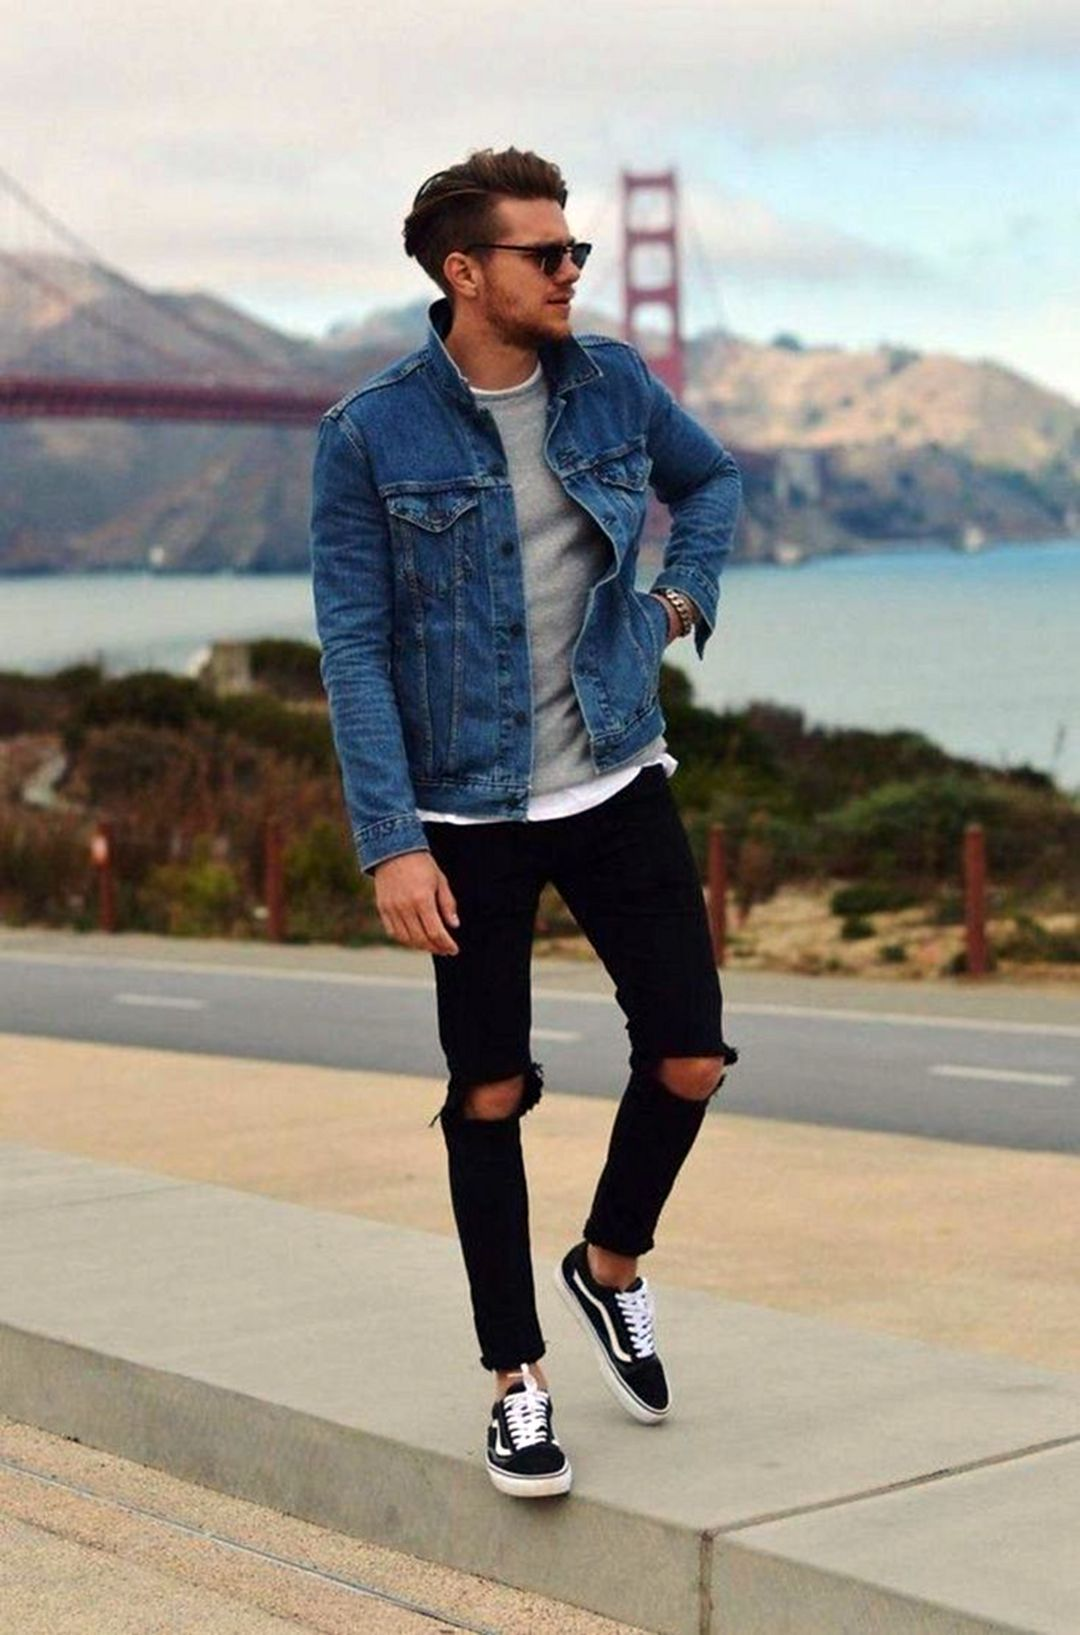 10 Cool Men S Outfits Ideas That Are Trend 2020 Fashions Nowadays In 2020 Sneakers Outfit Men Mens Outfits Denim Jacket Men